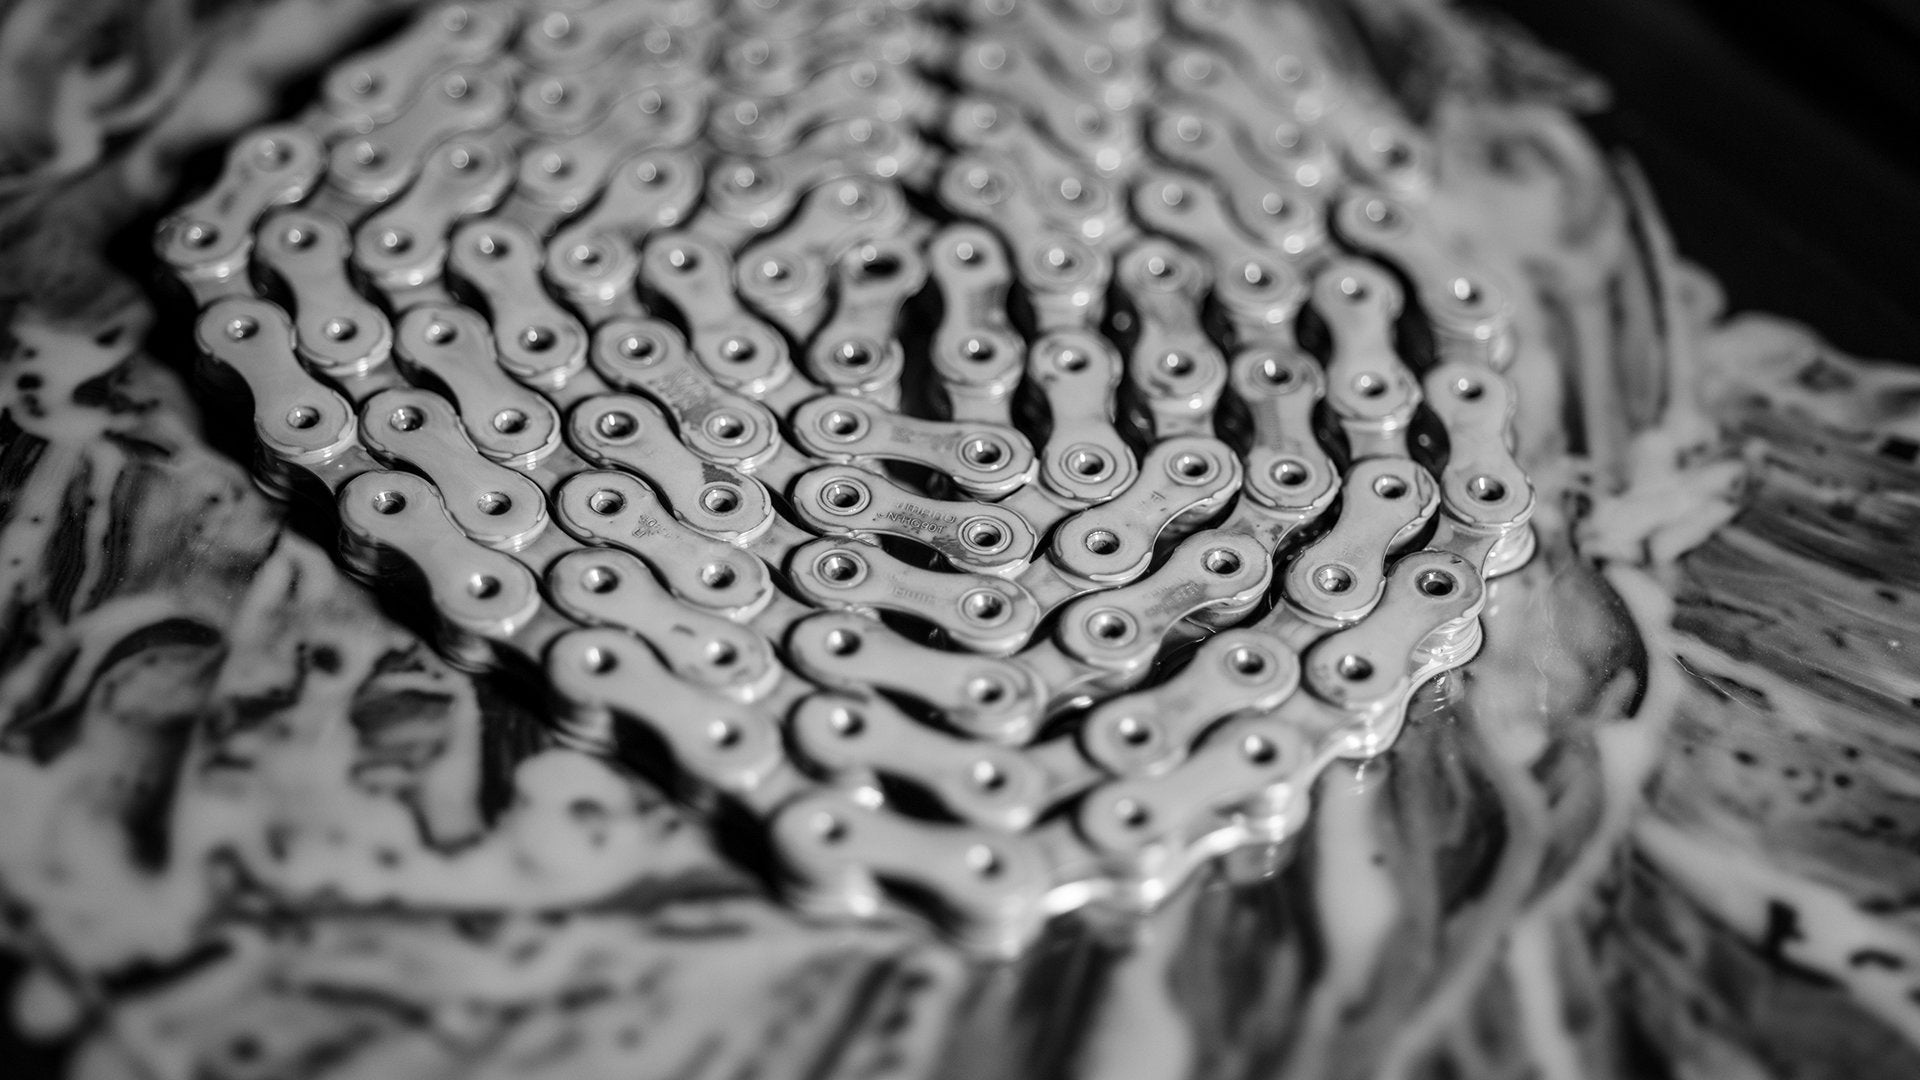 NTC Nanotube Chain - Muc-Off